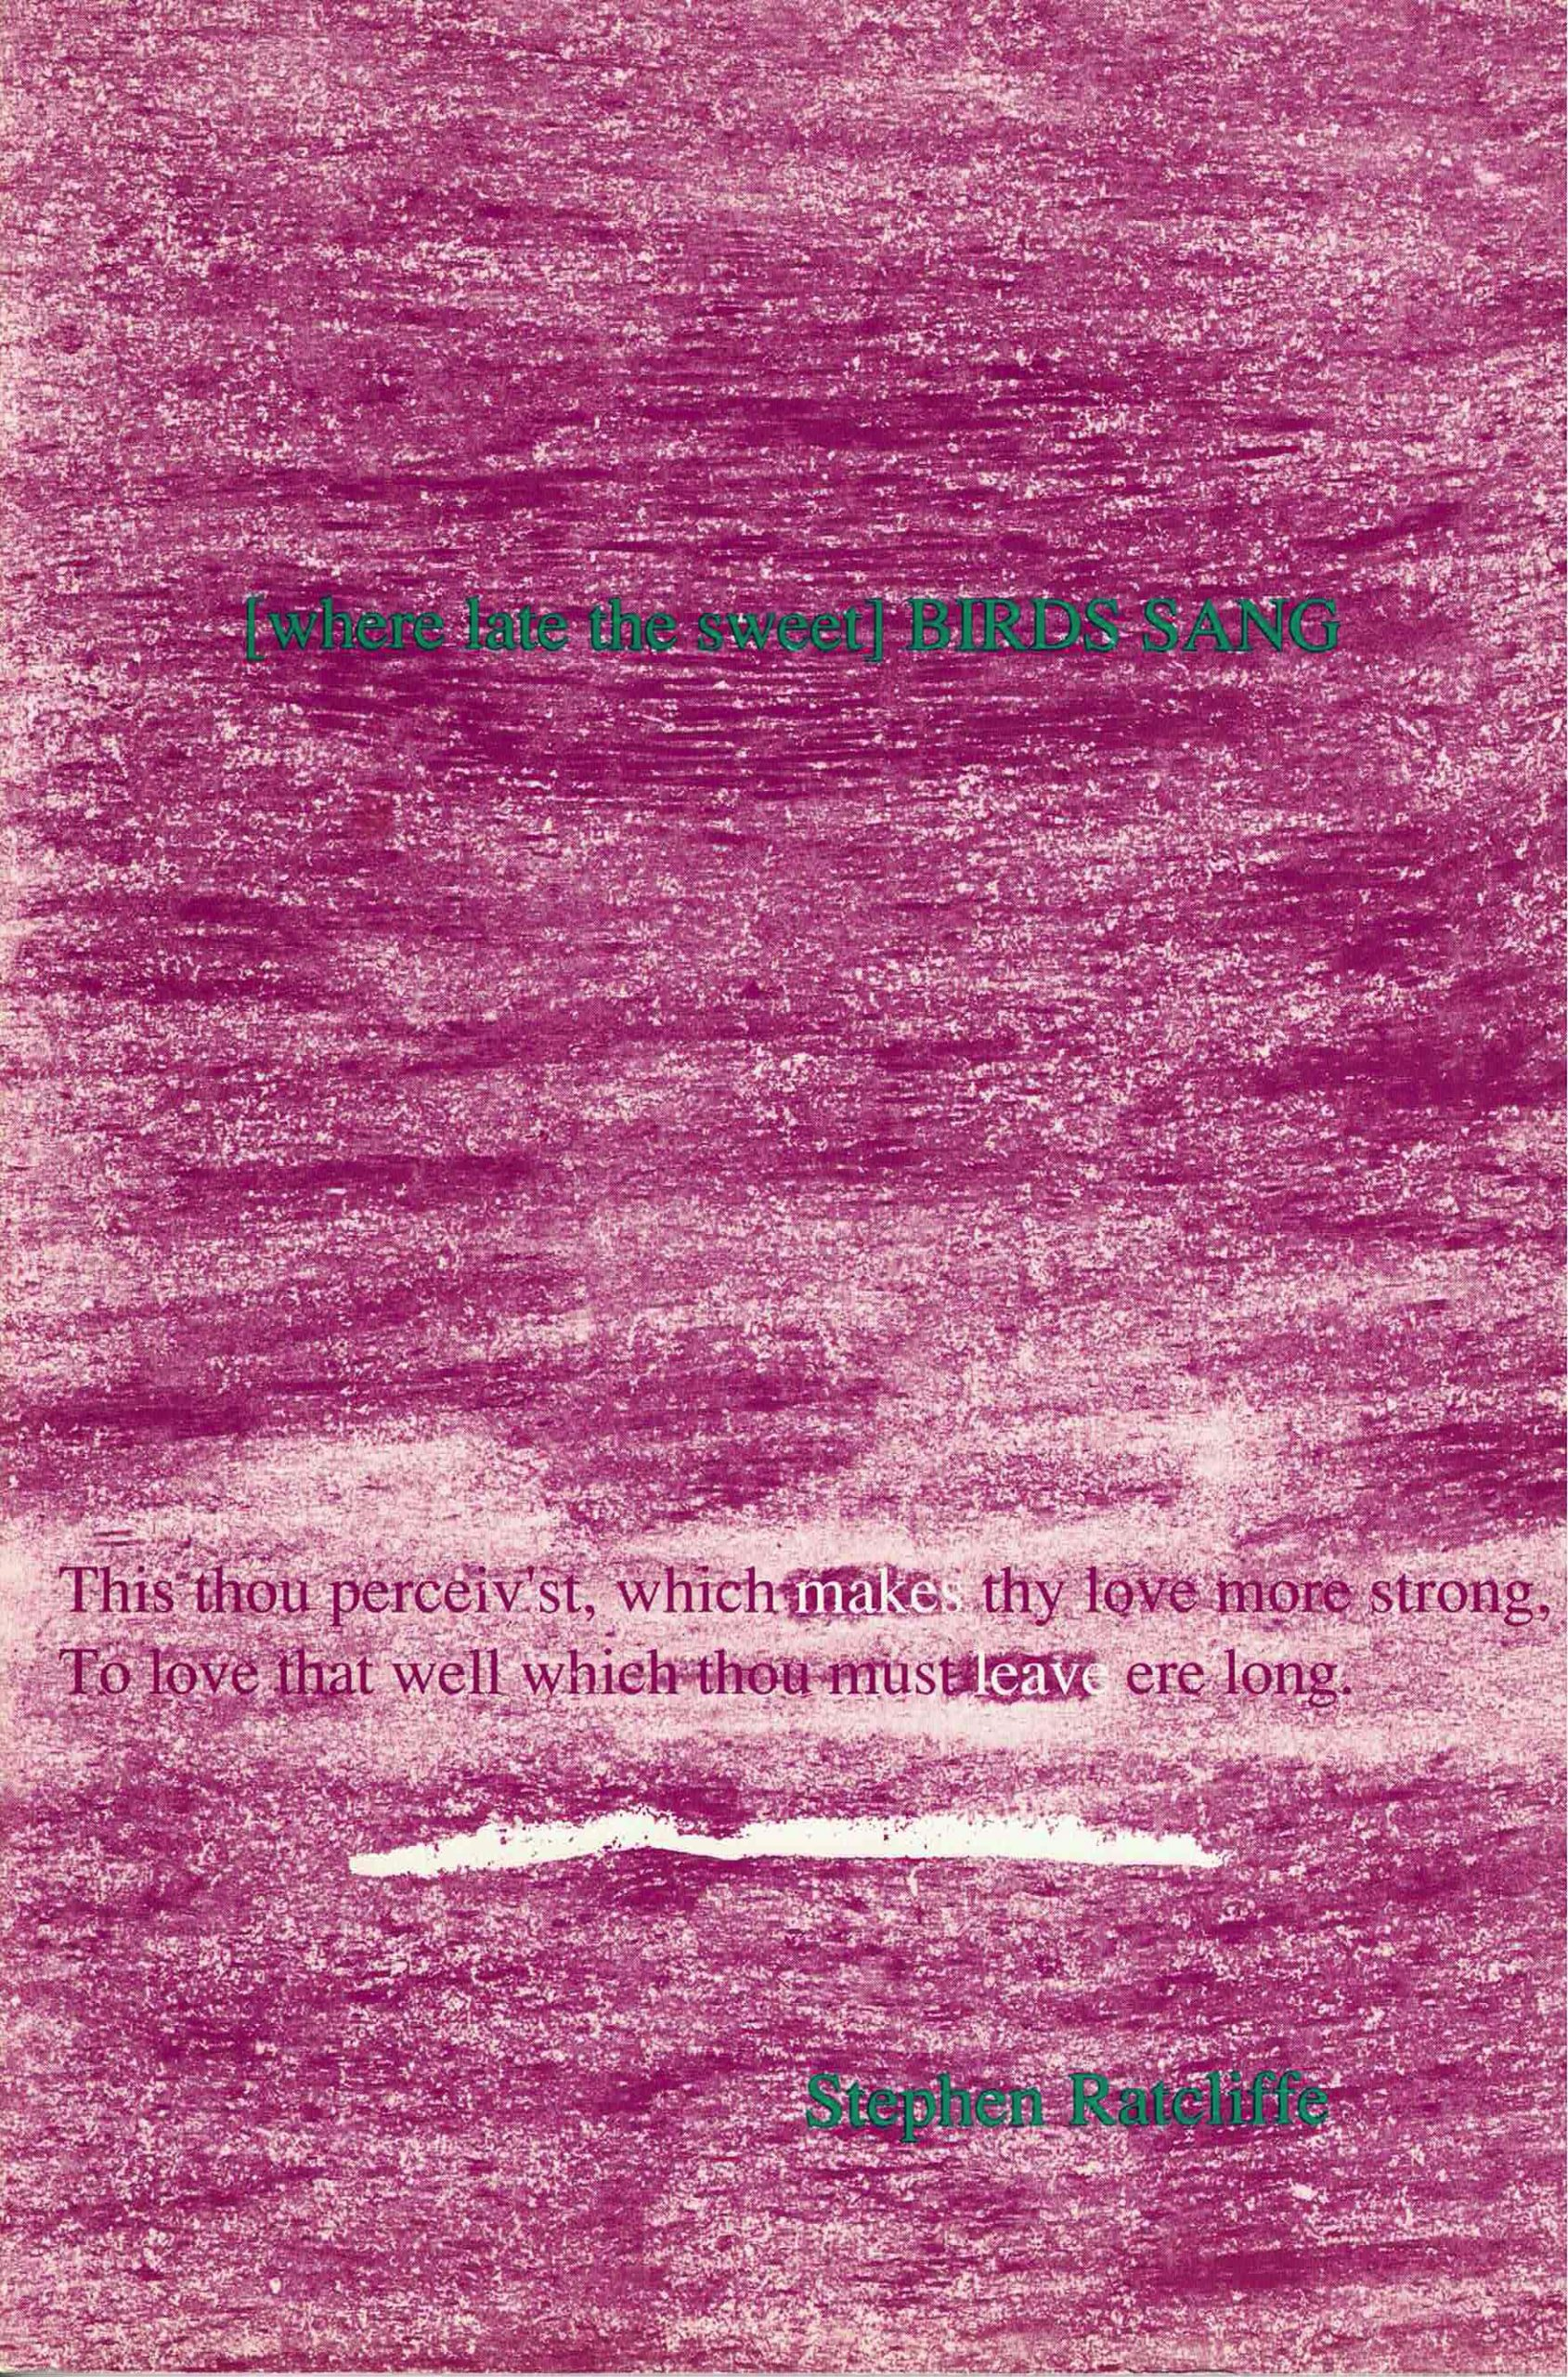 cover of [where late the sweet] BIRDS SANG by stephen ratcliffe, textured magenta across the entire cover